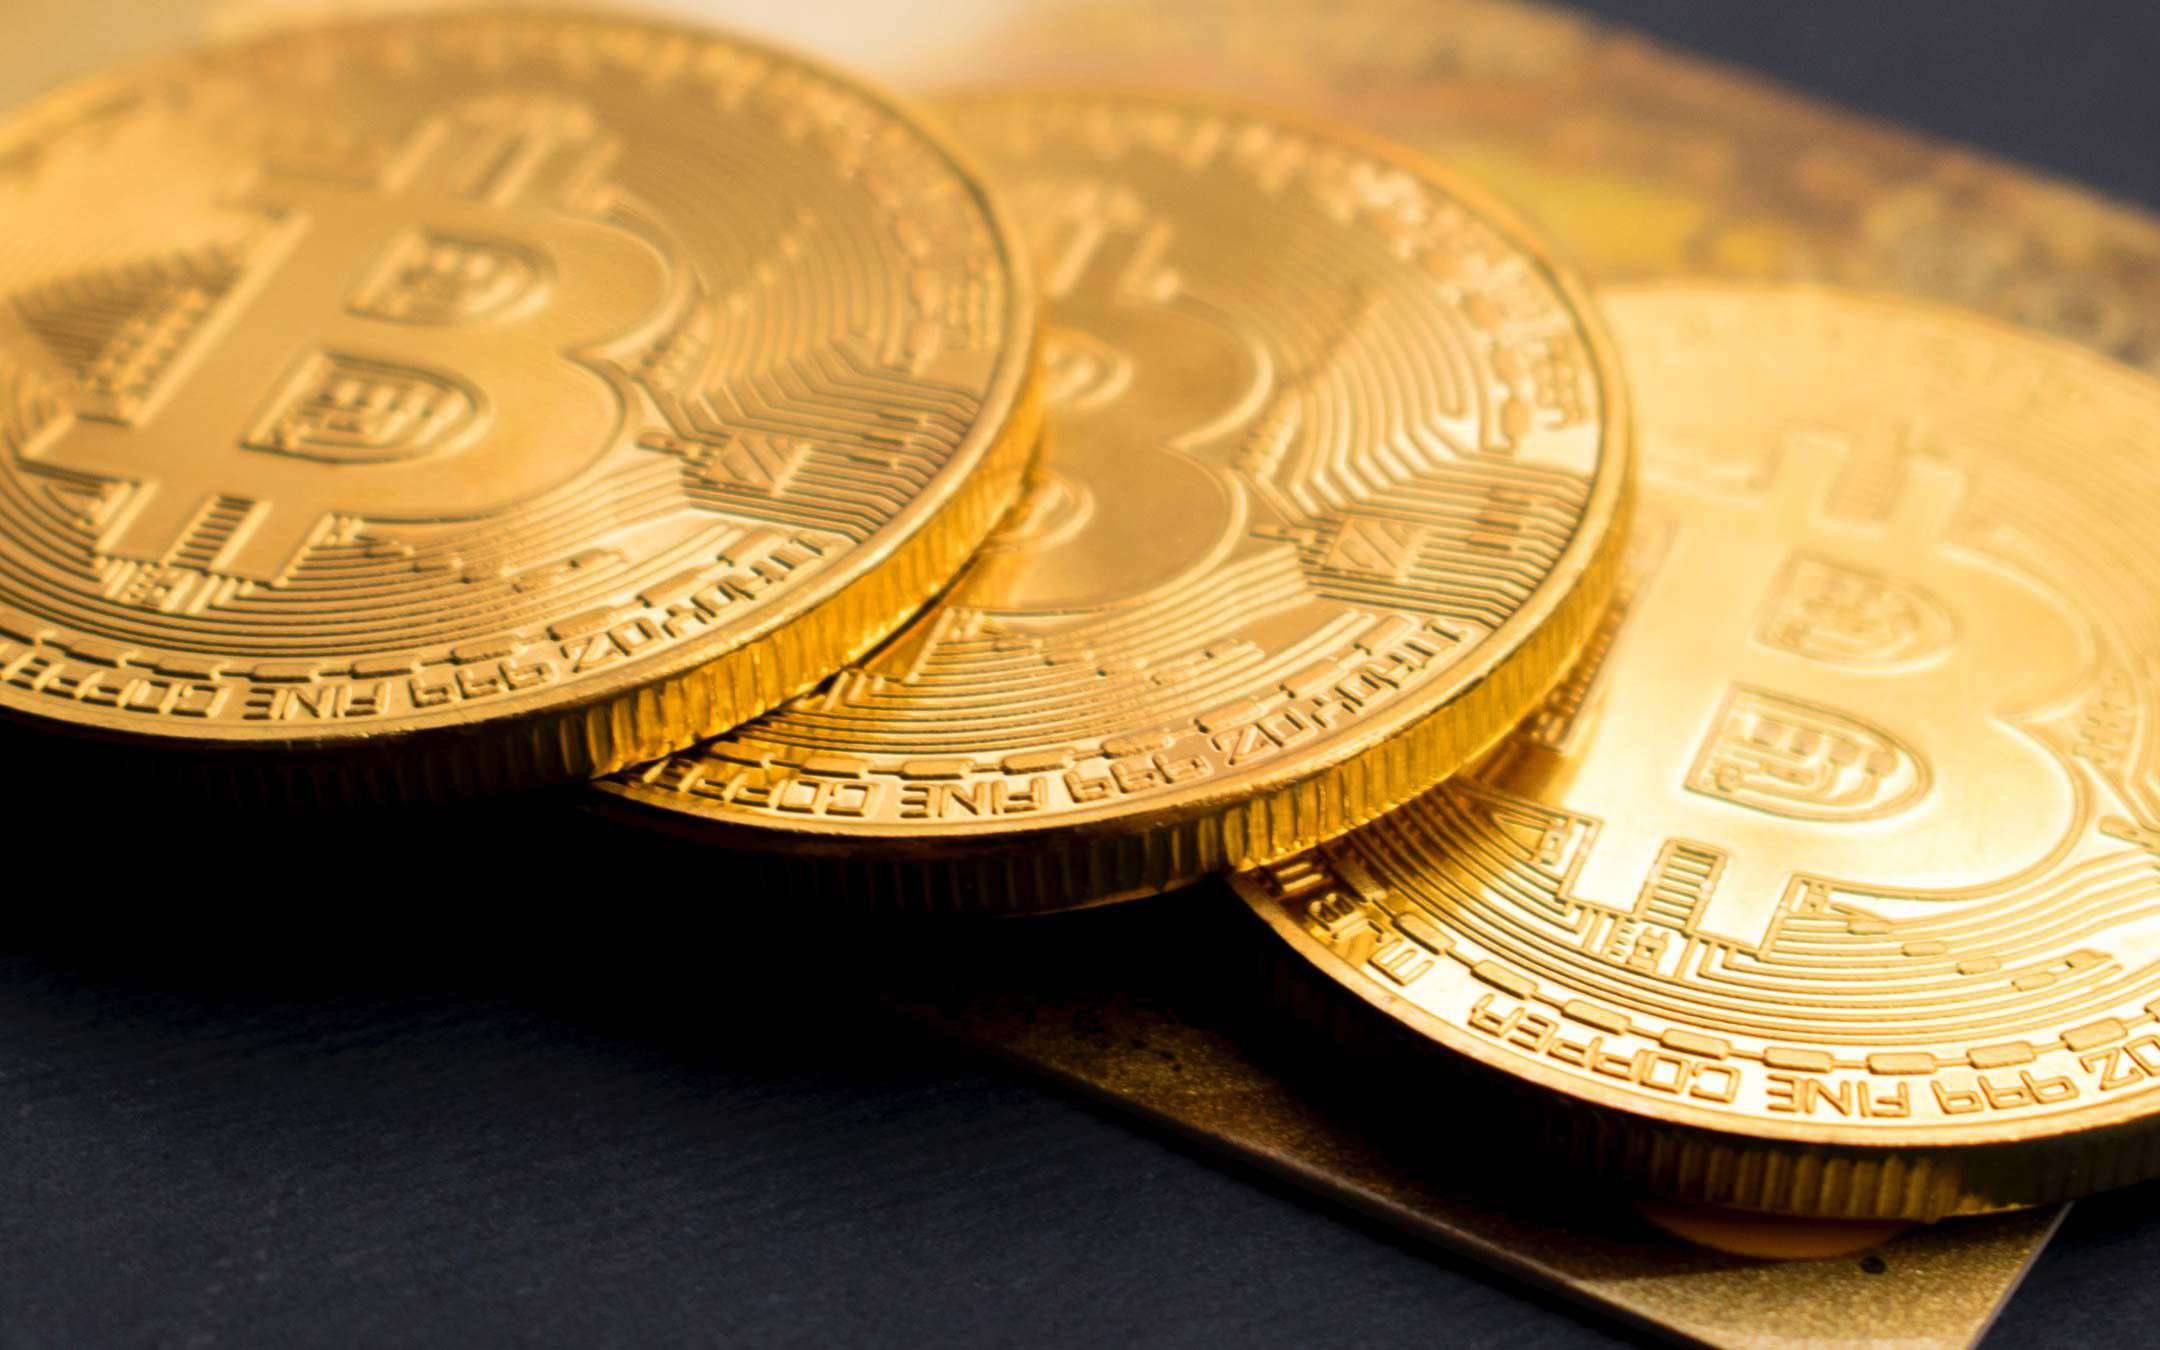 Bitcoins exceed the trillion dollars